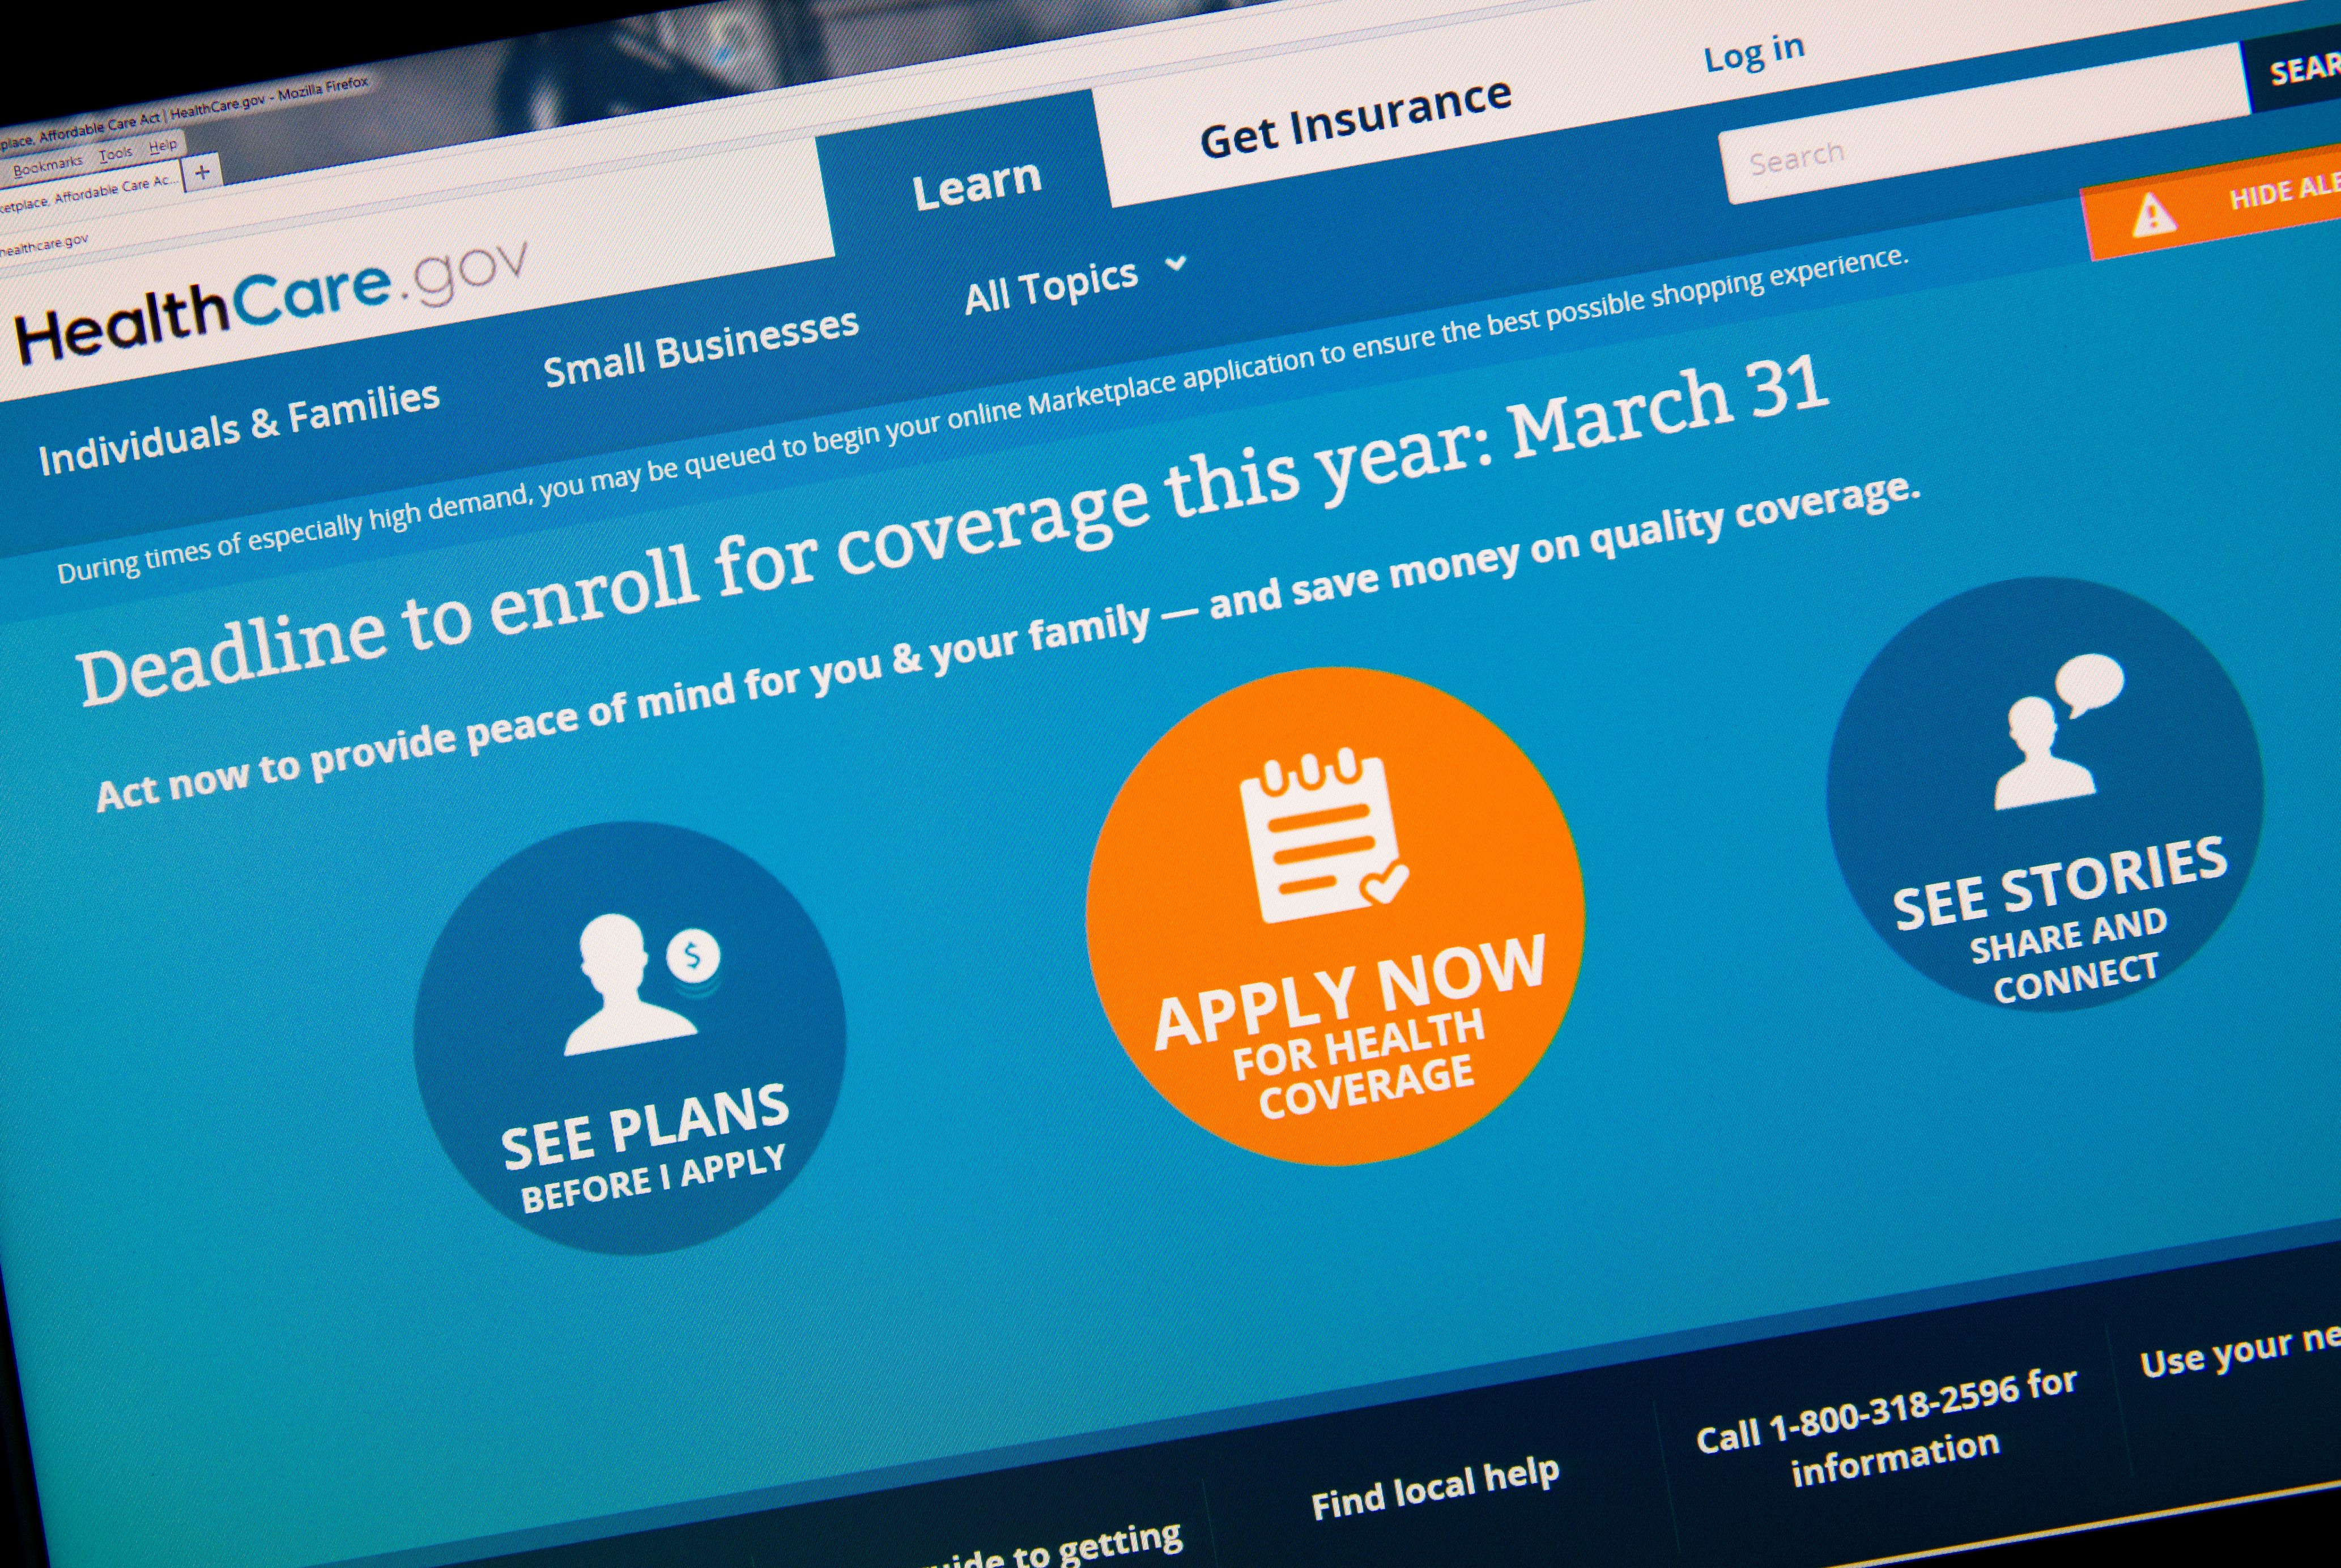 The home page for the HealthCare.gov on March 31, 2014 in Washington, D.C.